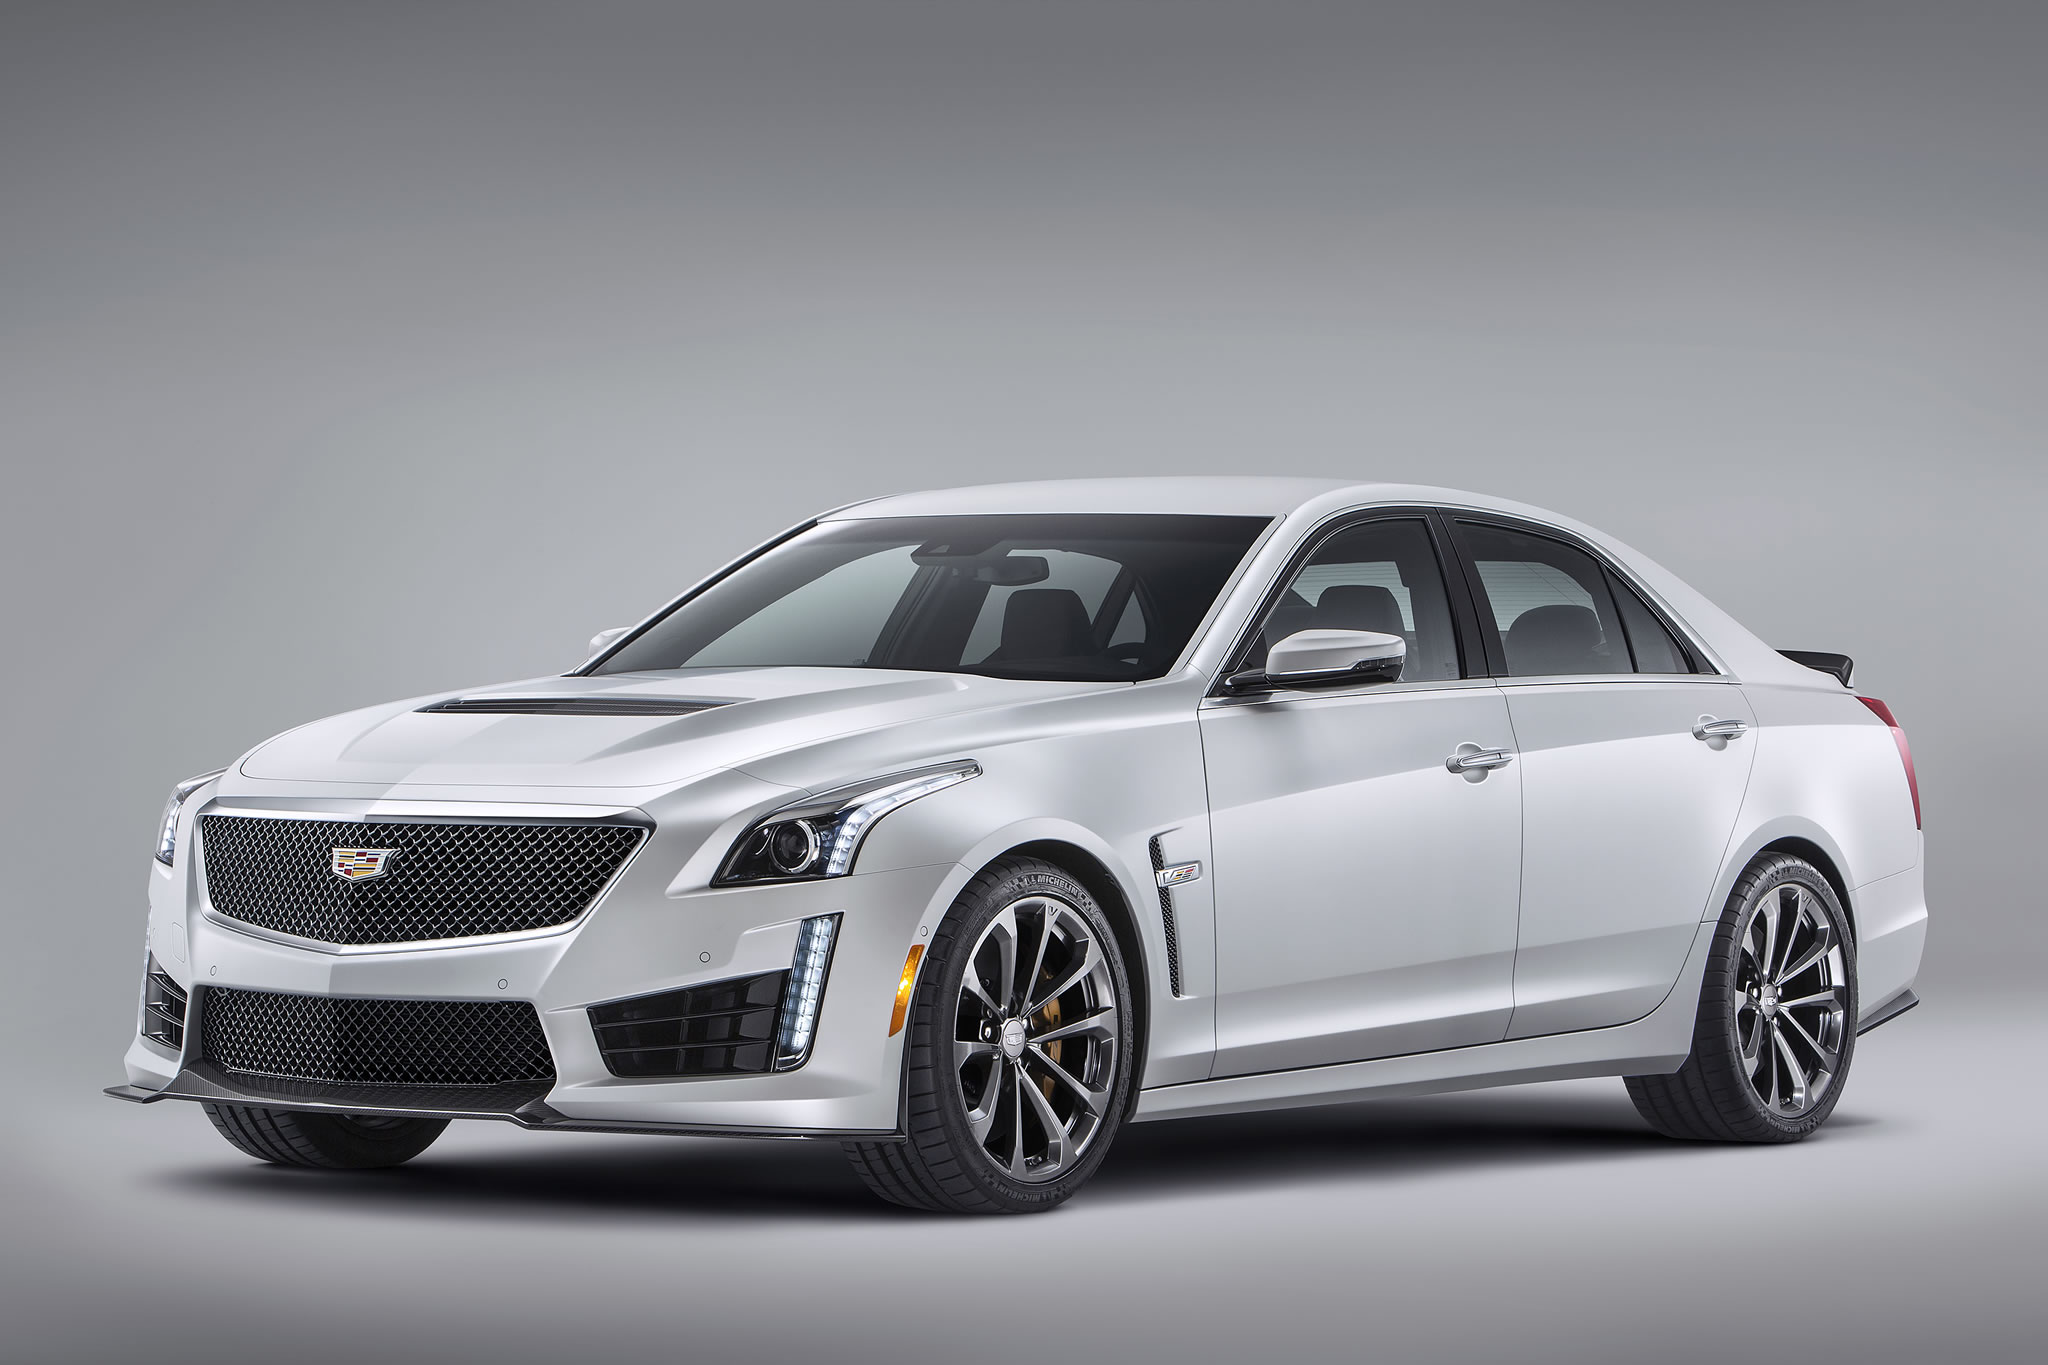 2016 cadillac cts v sedan front photo crystal white tricoat color size 2048 x 1365 nr 2 16. Black Bedroom Furniture Sets. Home Design Ideas